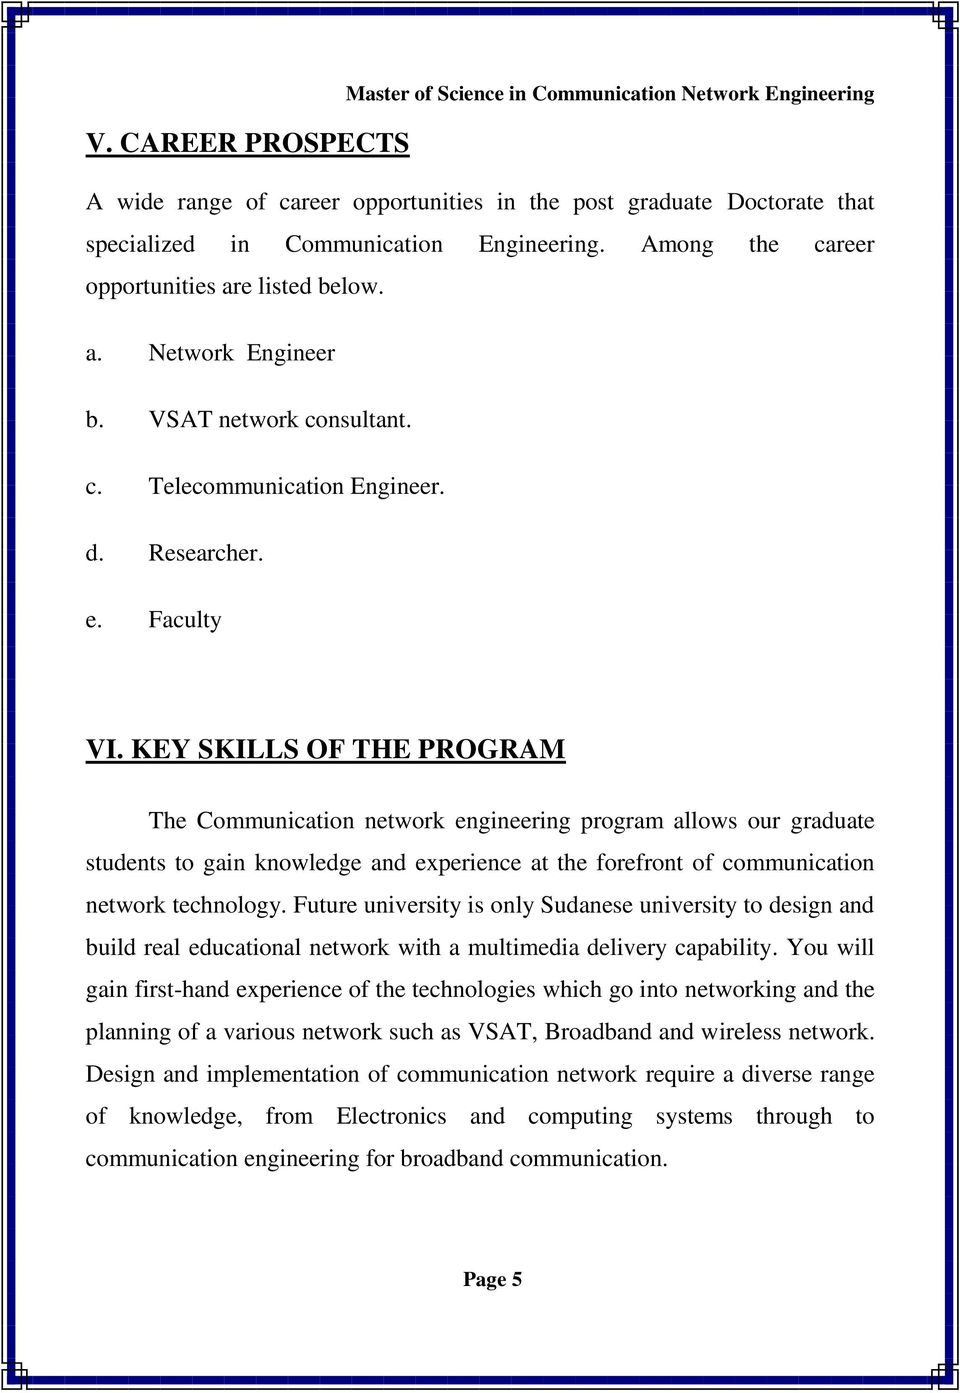 KEY SKILLS OF THE PROGRAM The Communication network engineering program allows our graduate students to gain knowledge and experience at the forefront of communication network technology.